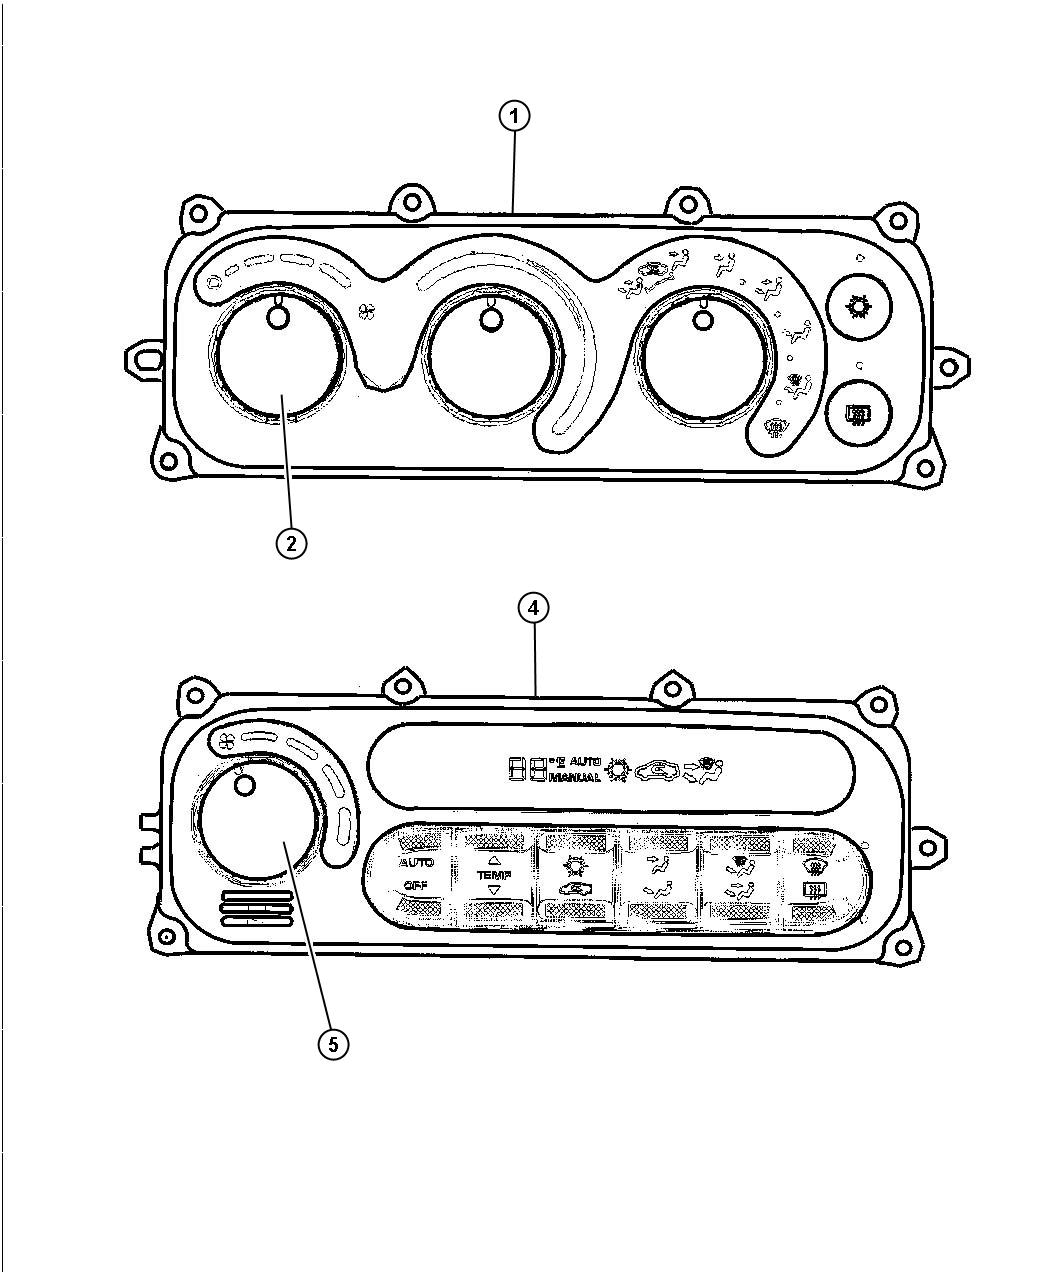 Dodge Magnum Used for: BULB AND SOCKET. Used for: Heater